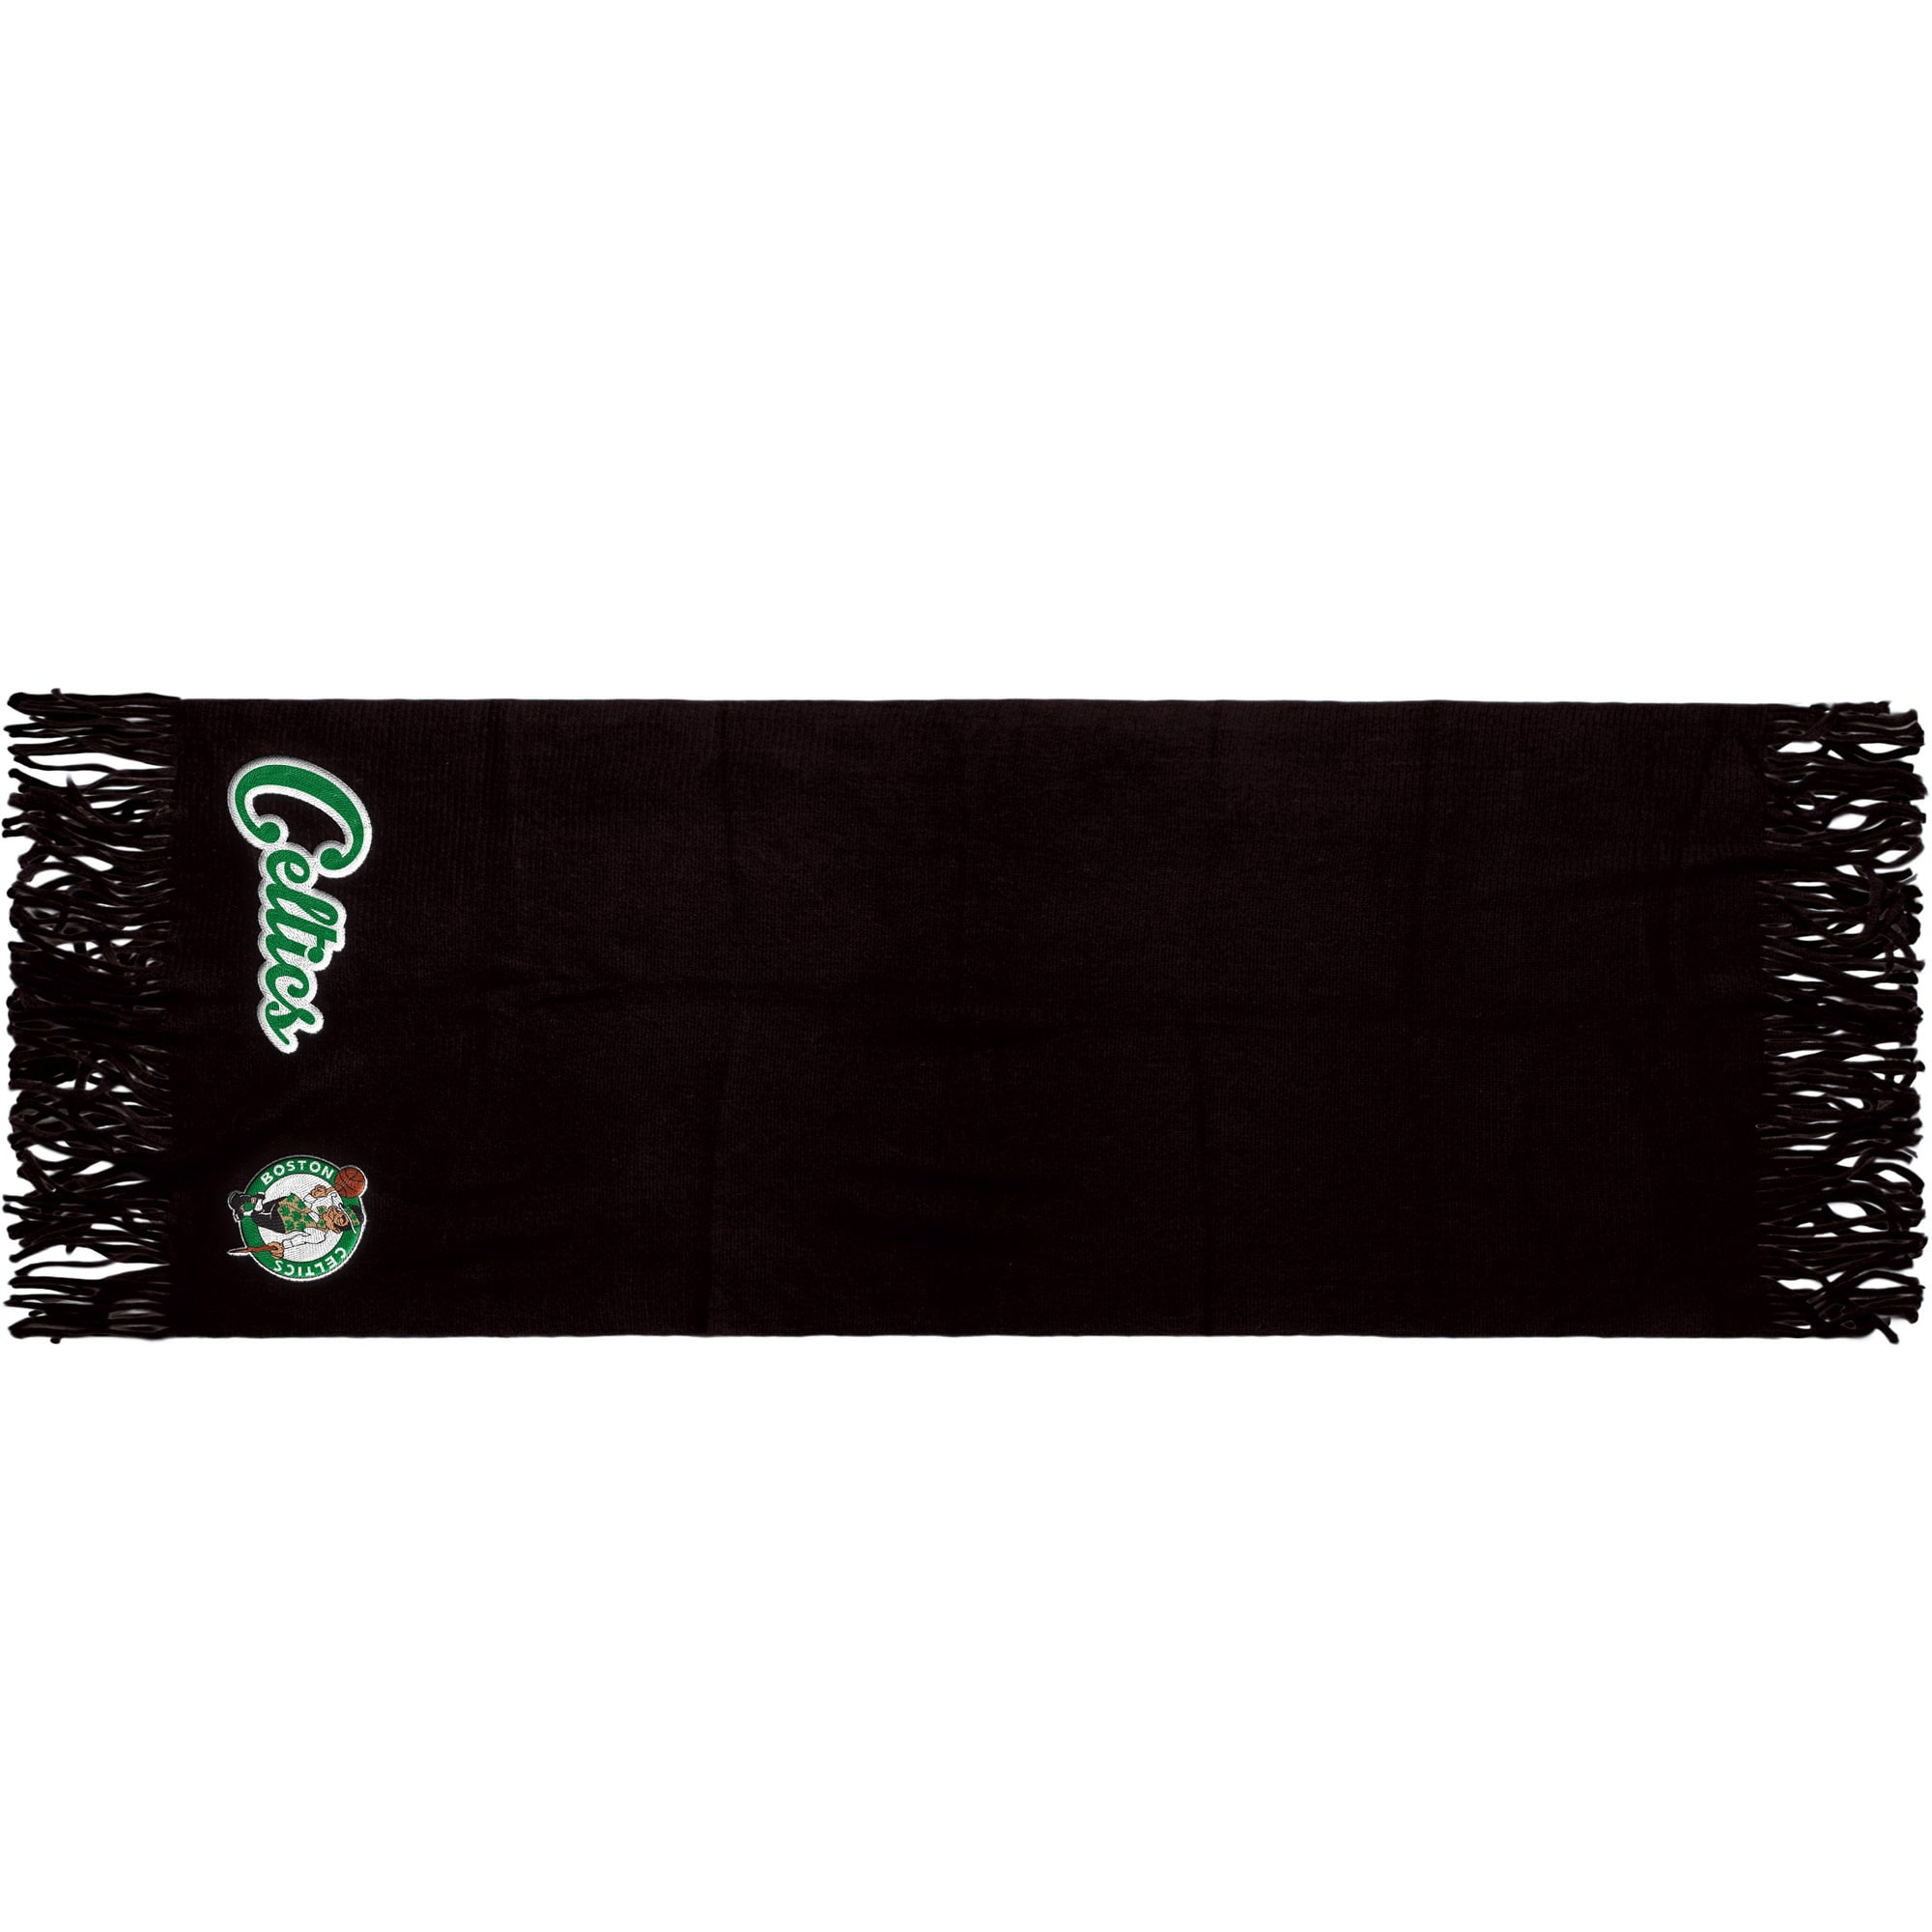 "Boston Celtics 81"" x 27"" Oversized Fringed Scarf"